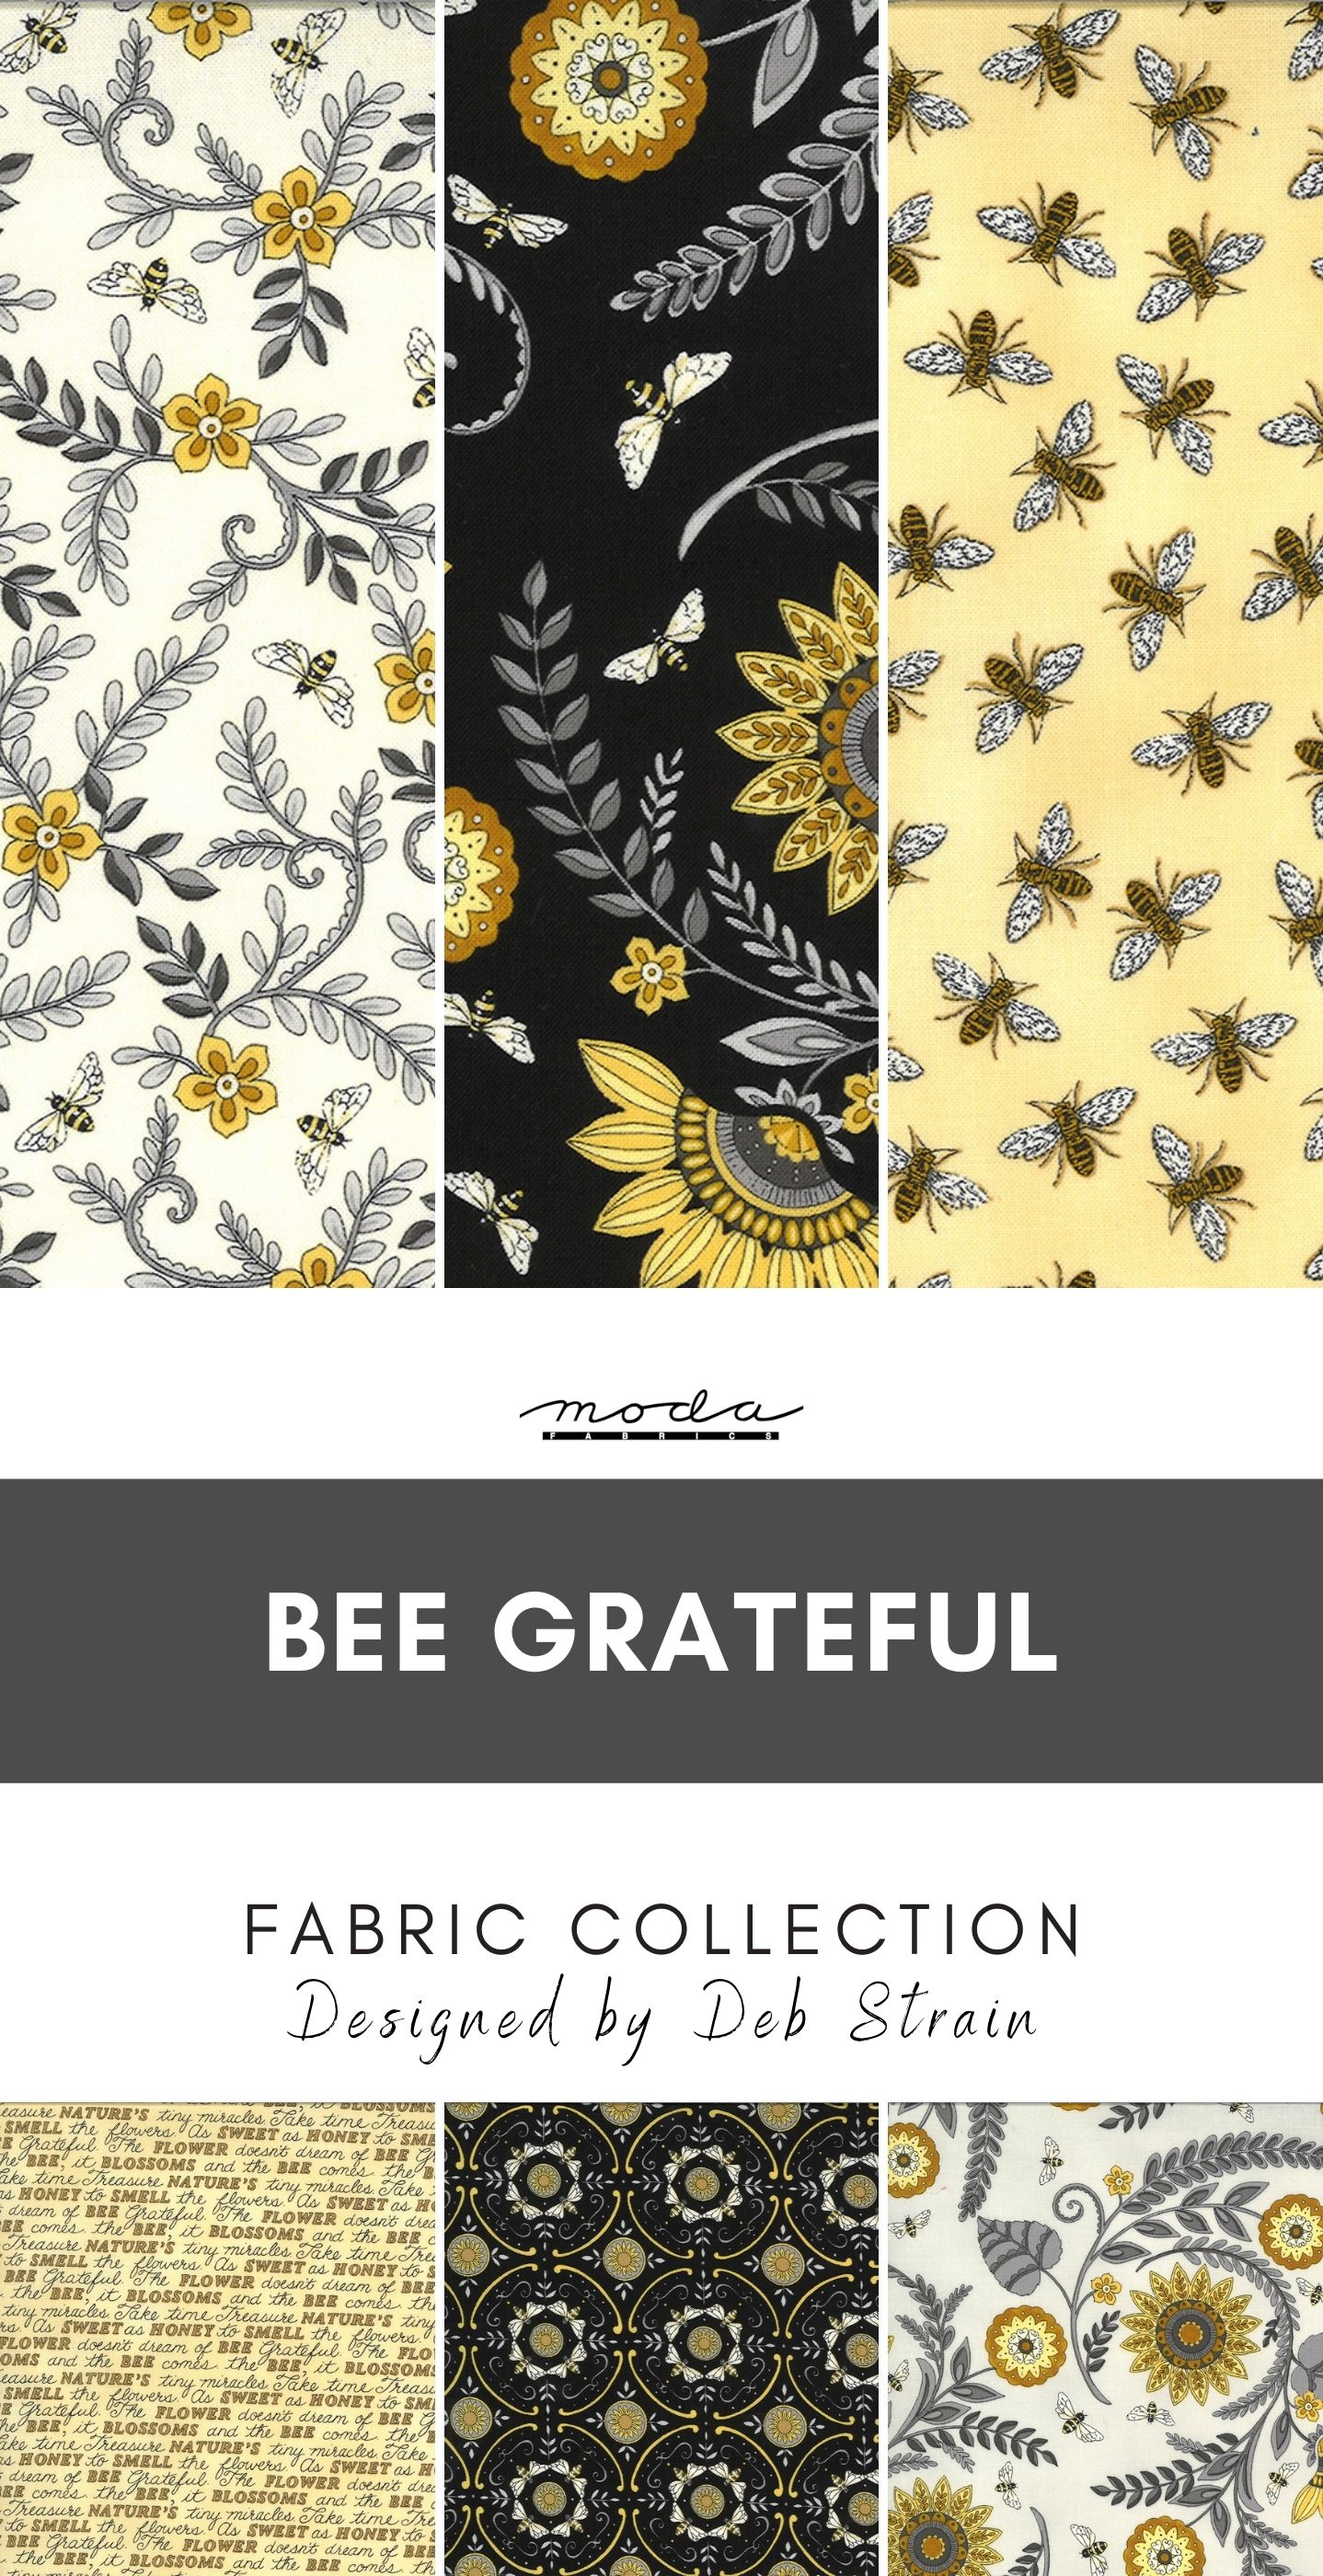 Bee Grateful Fabric Collection by Moda Fabric